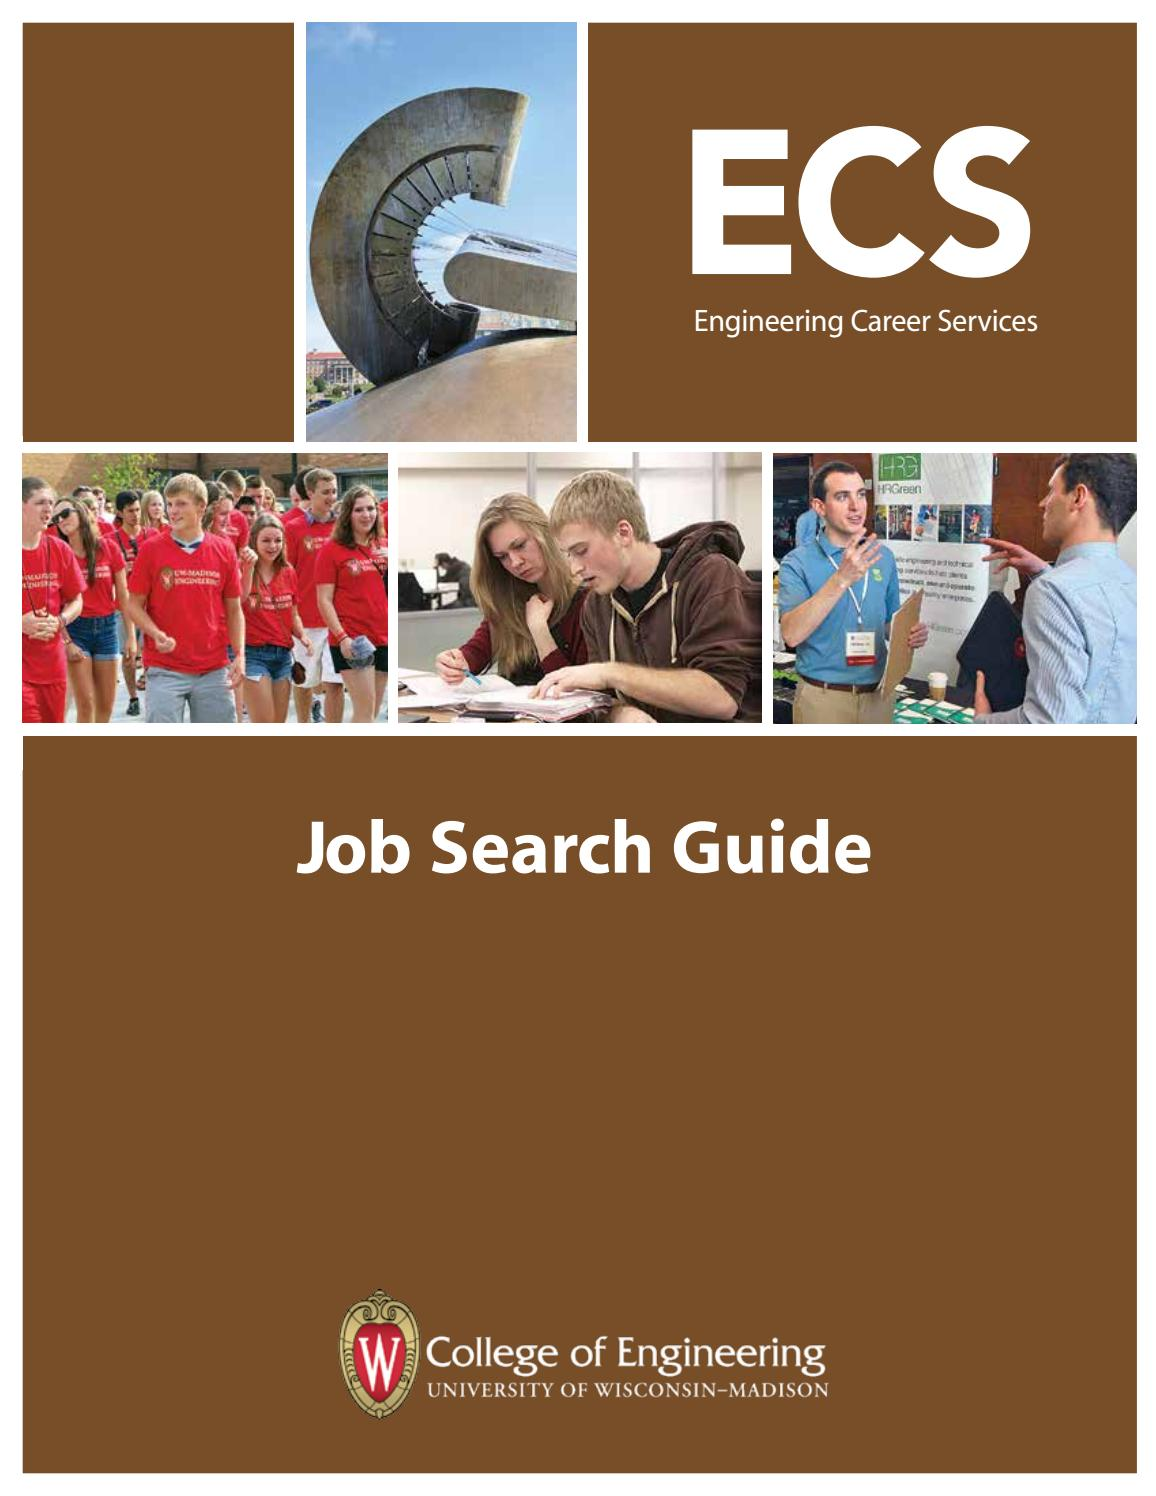 UW-Madison Engineering Career Services Job Search Guide by UW-Madison  College of Engineering - issuu